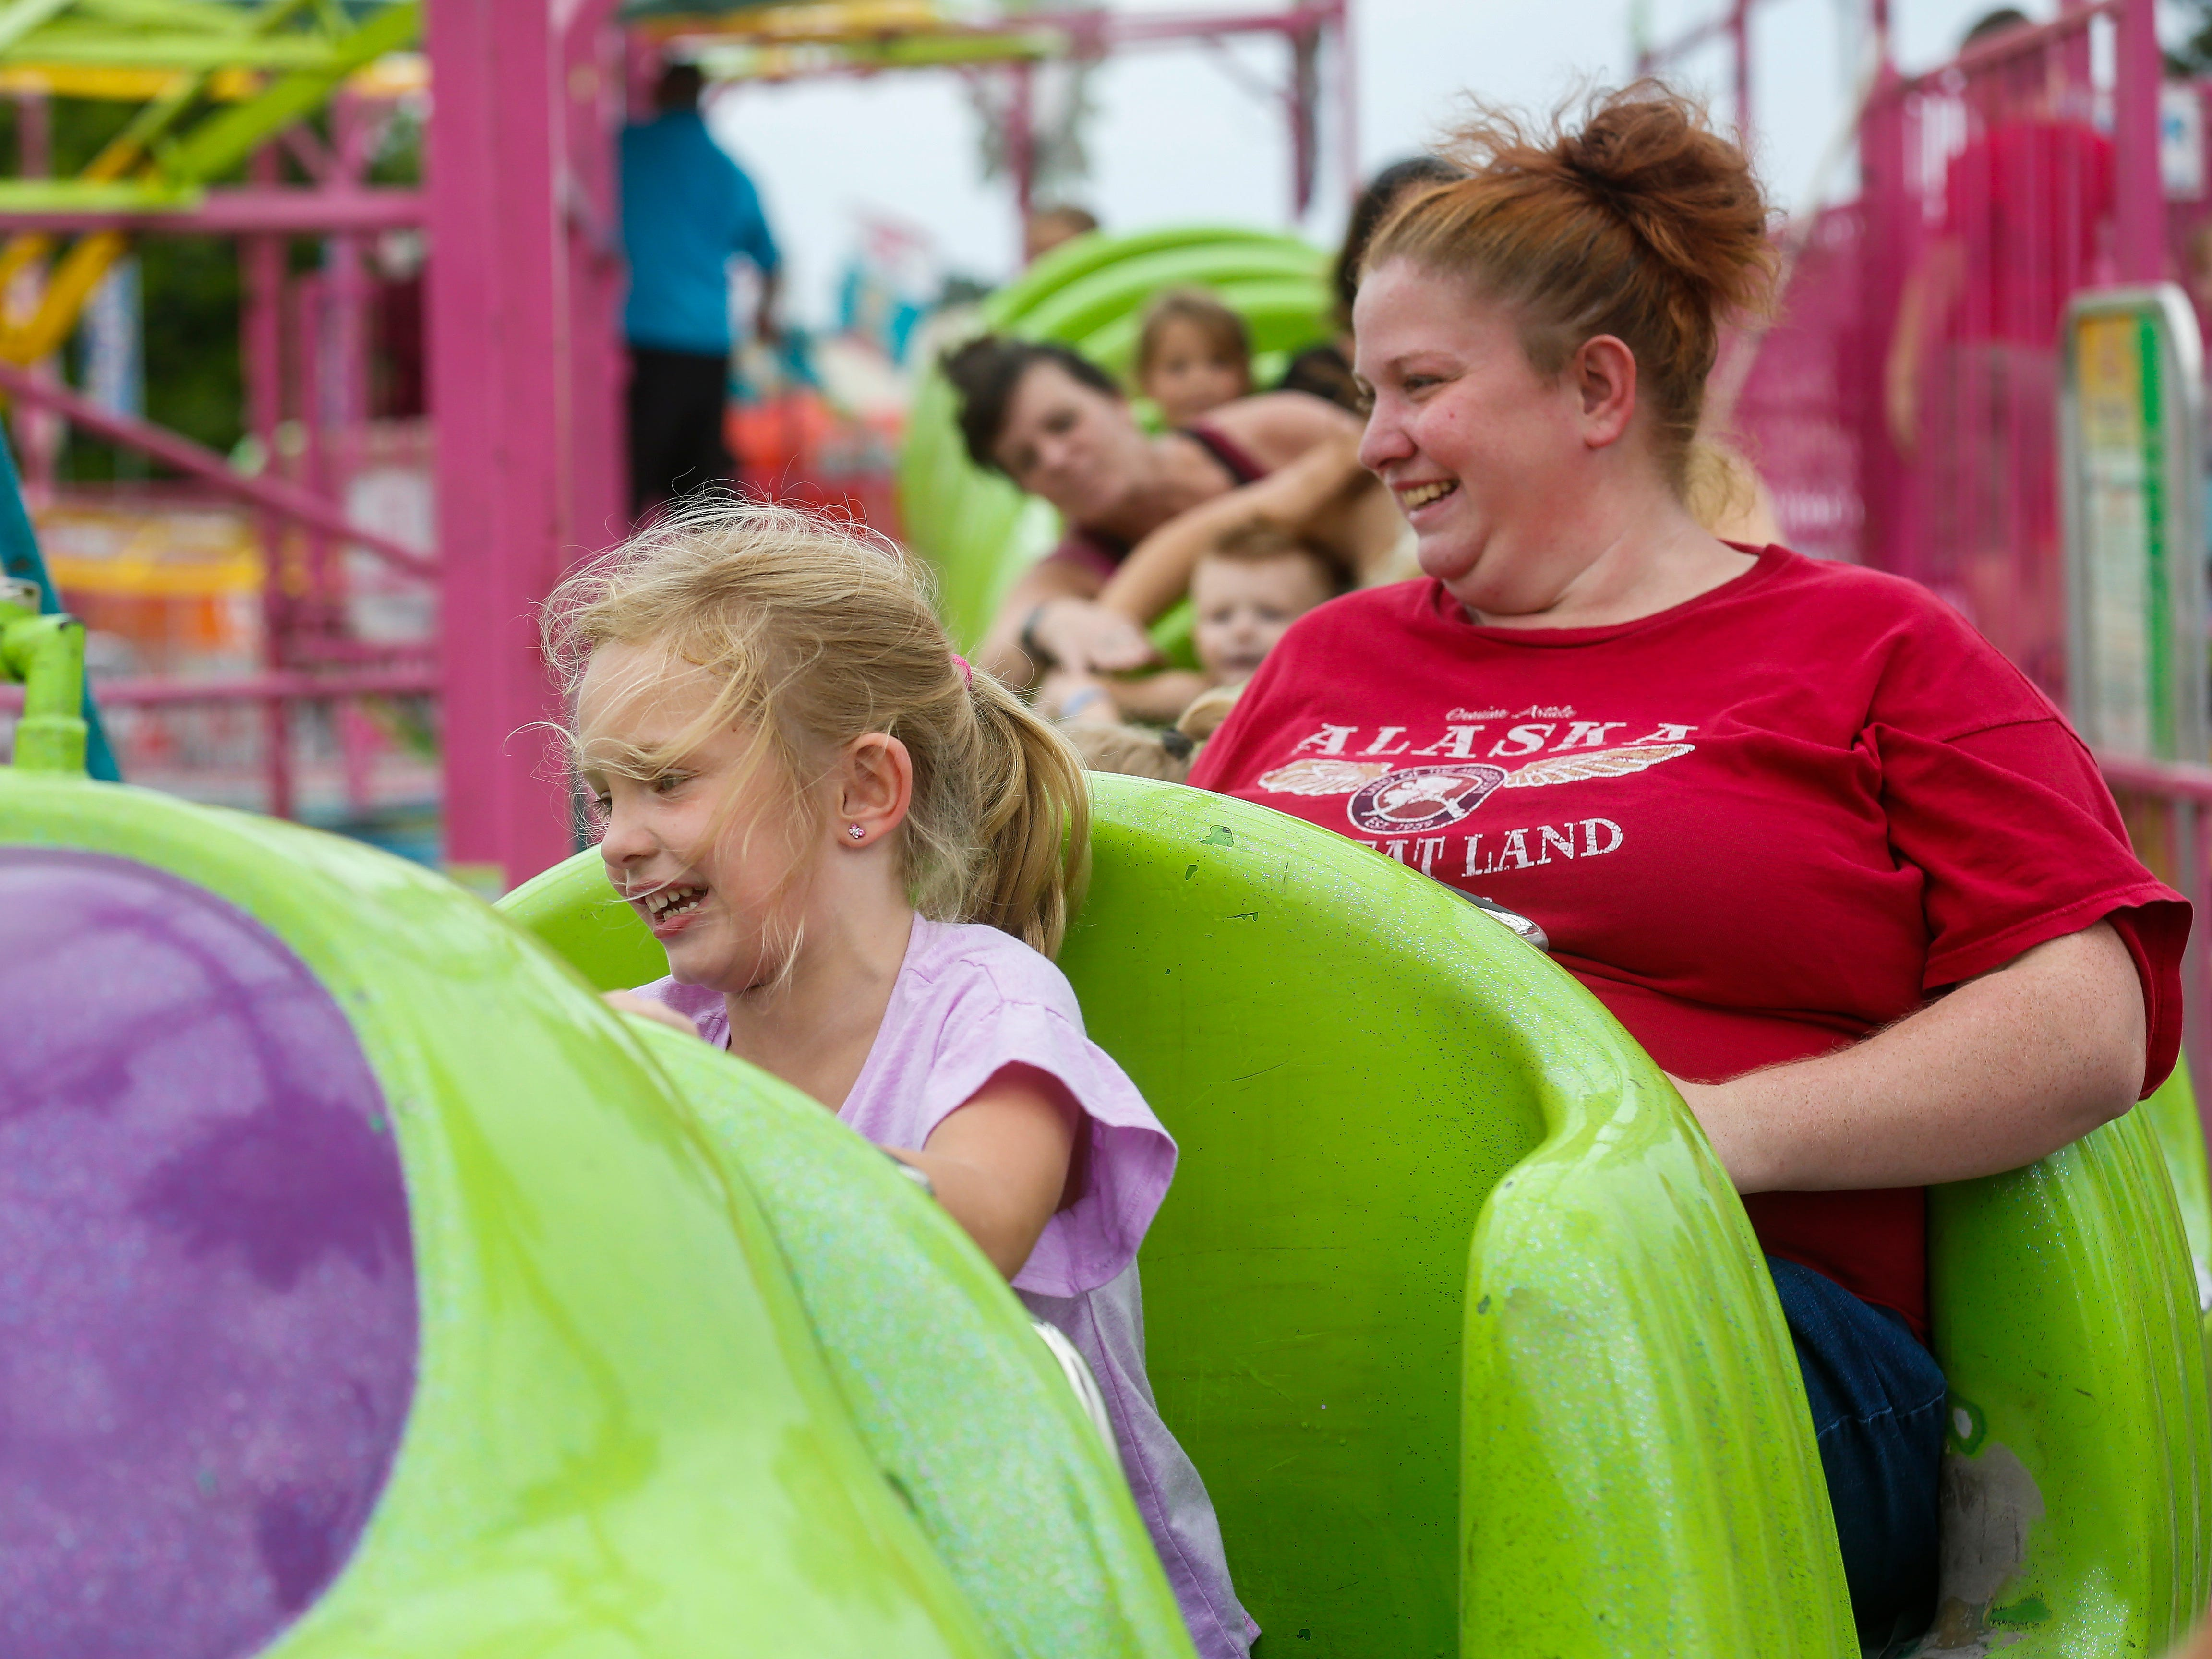 Aeryn Davis, 6, of Columbia, MO., rides the Wacky Worms with her mom Megan Davis at the Ozark Empire Fair on Saturday, July 28, 2018.